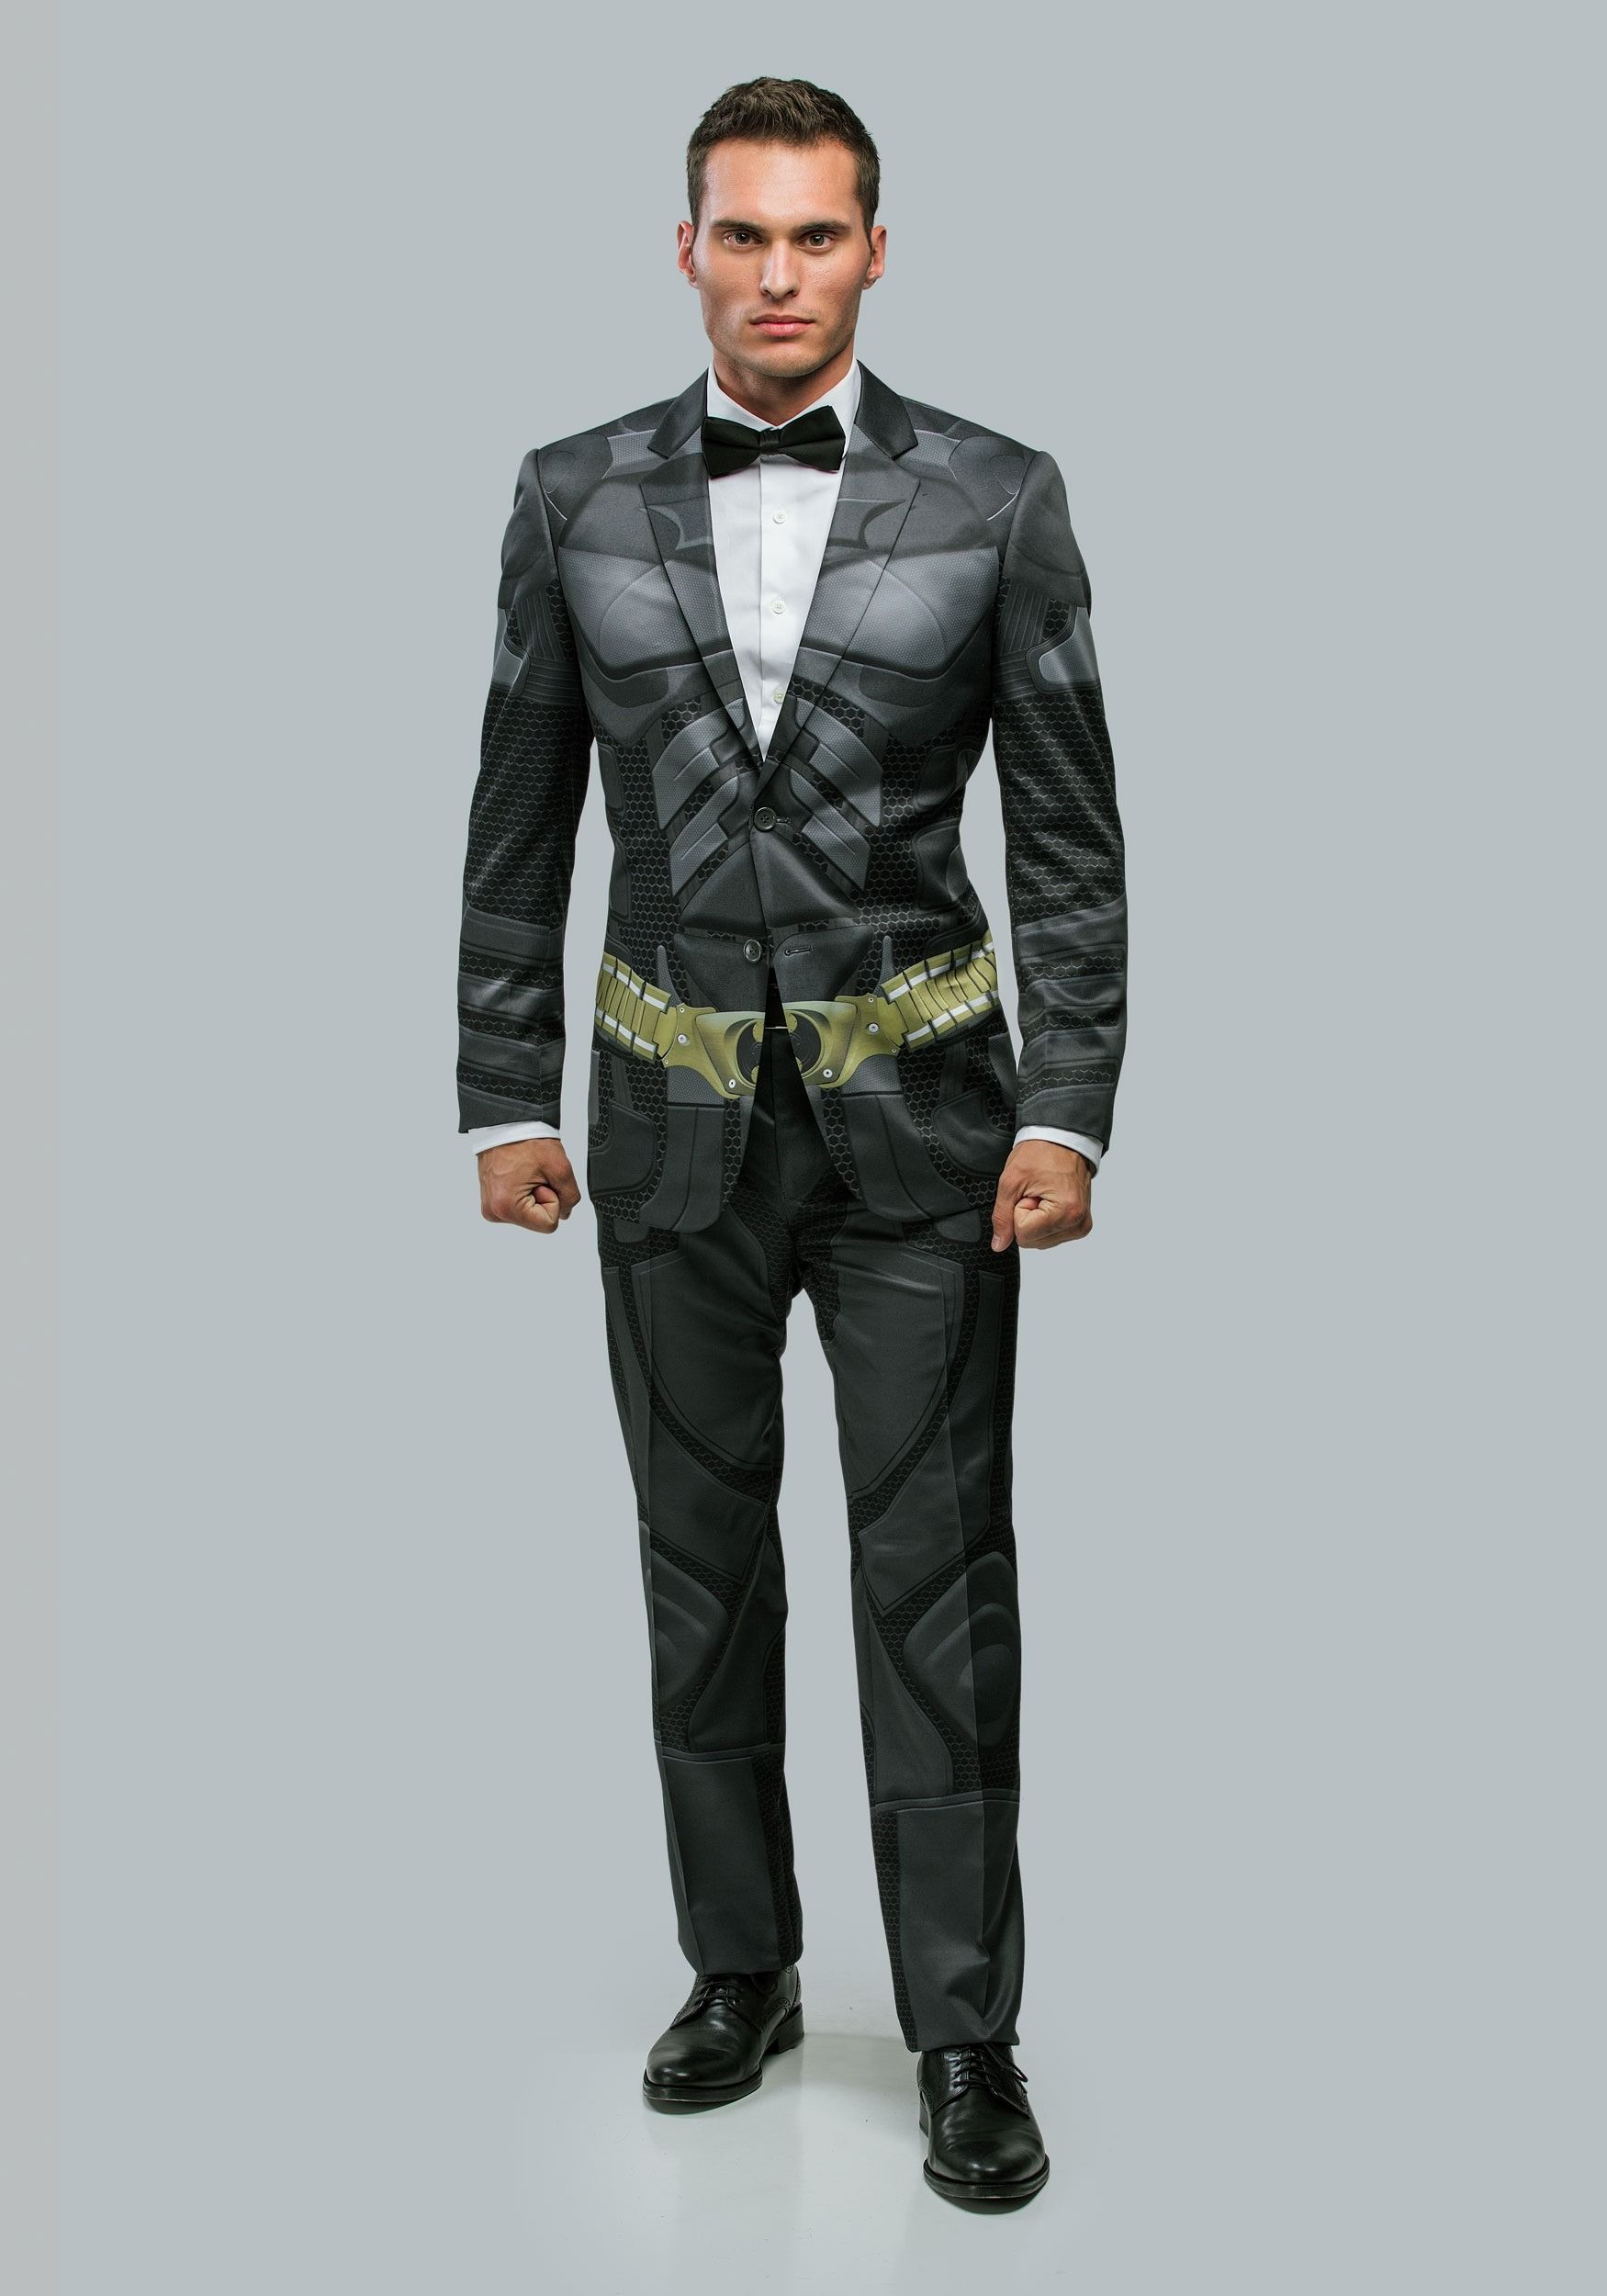 These Comic Book Formal Suits Are Wonderfully Bonkers | Marvel ...